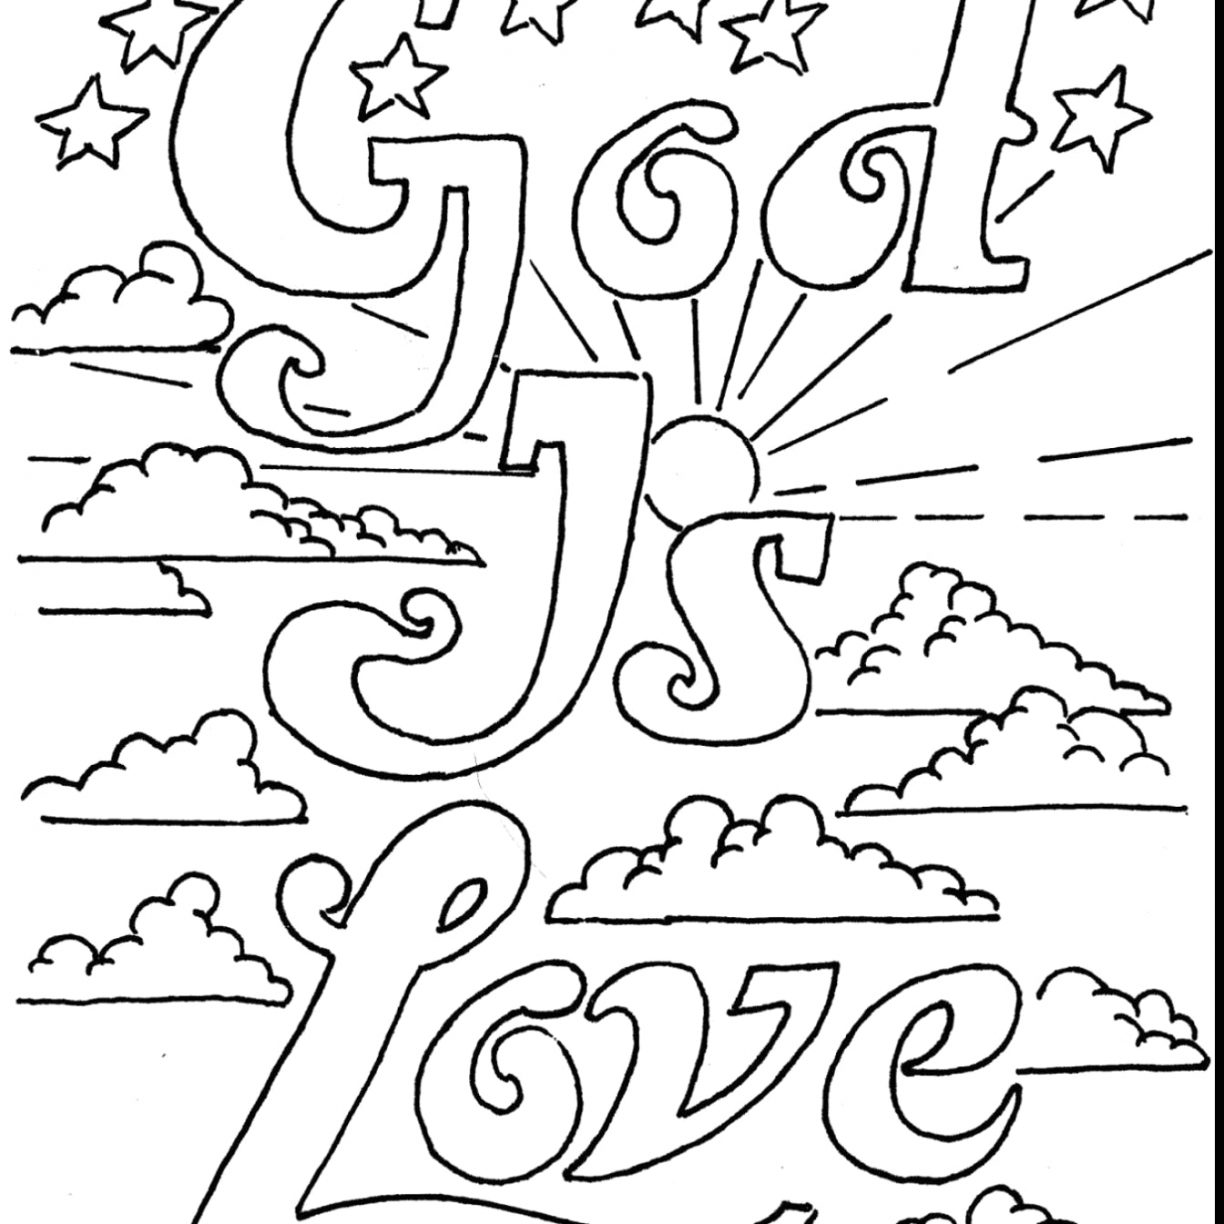 1224x1224 Inspiration Doodle Art For Kids Doodling Doodle Art Coloring Pages